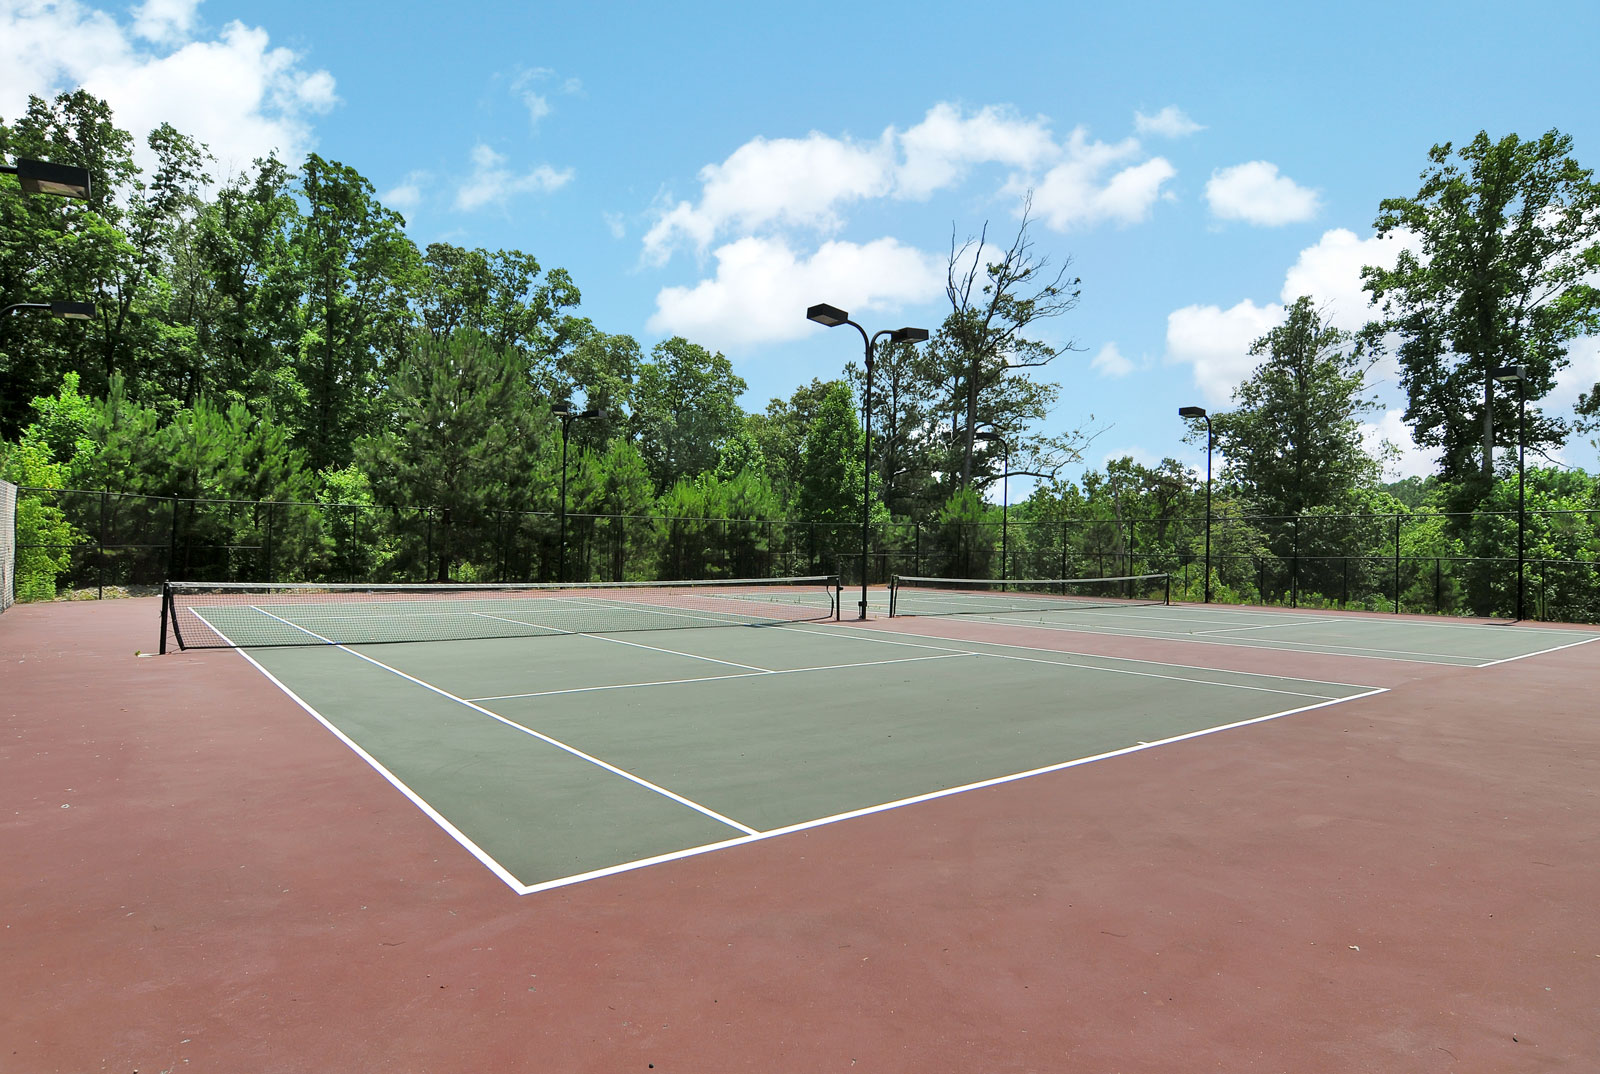 Apartments in Buford with tennis courts